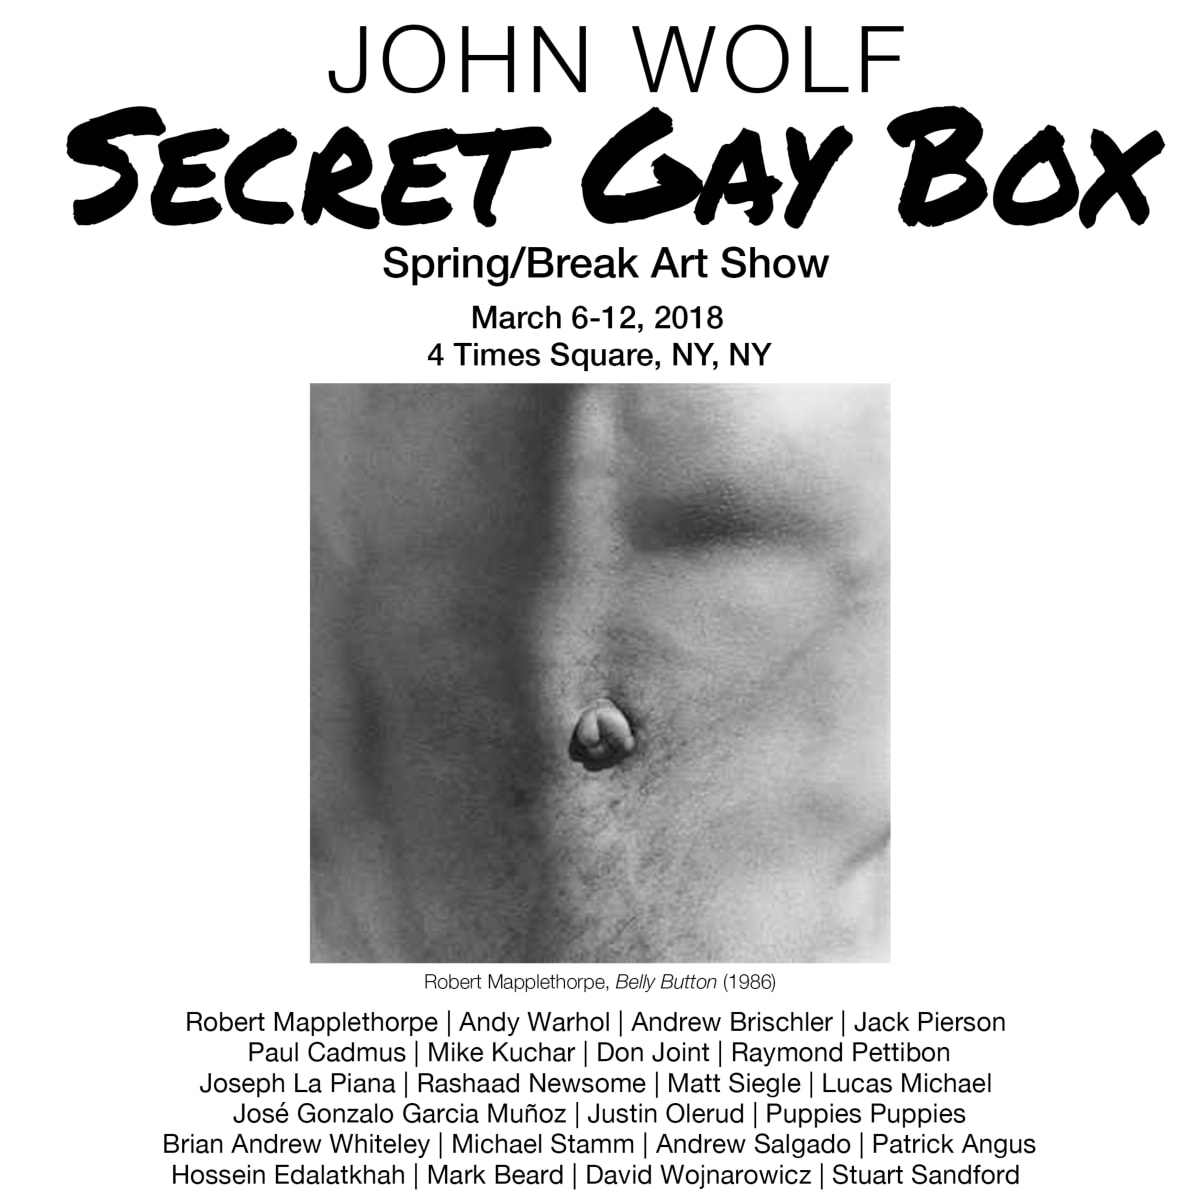 Secret Gay Box